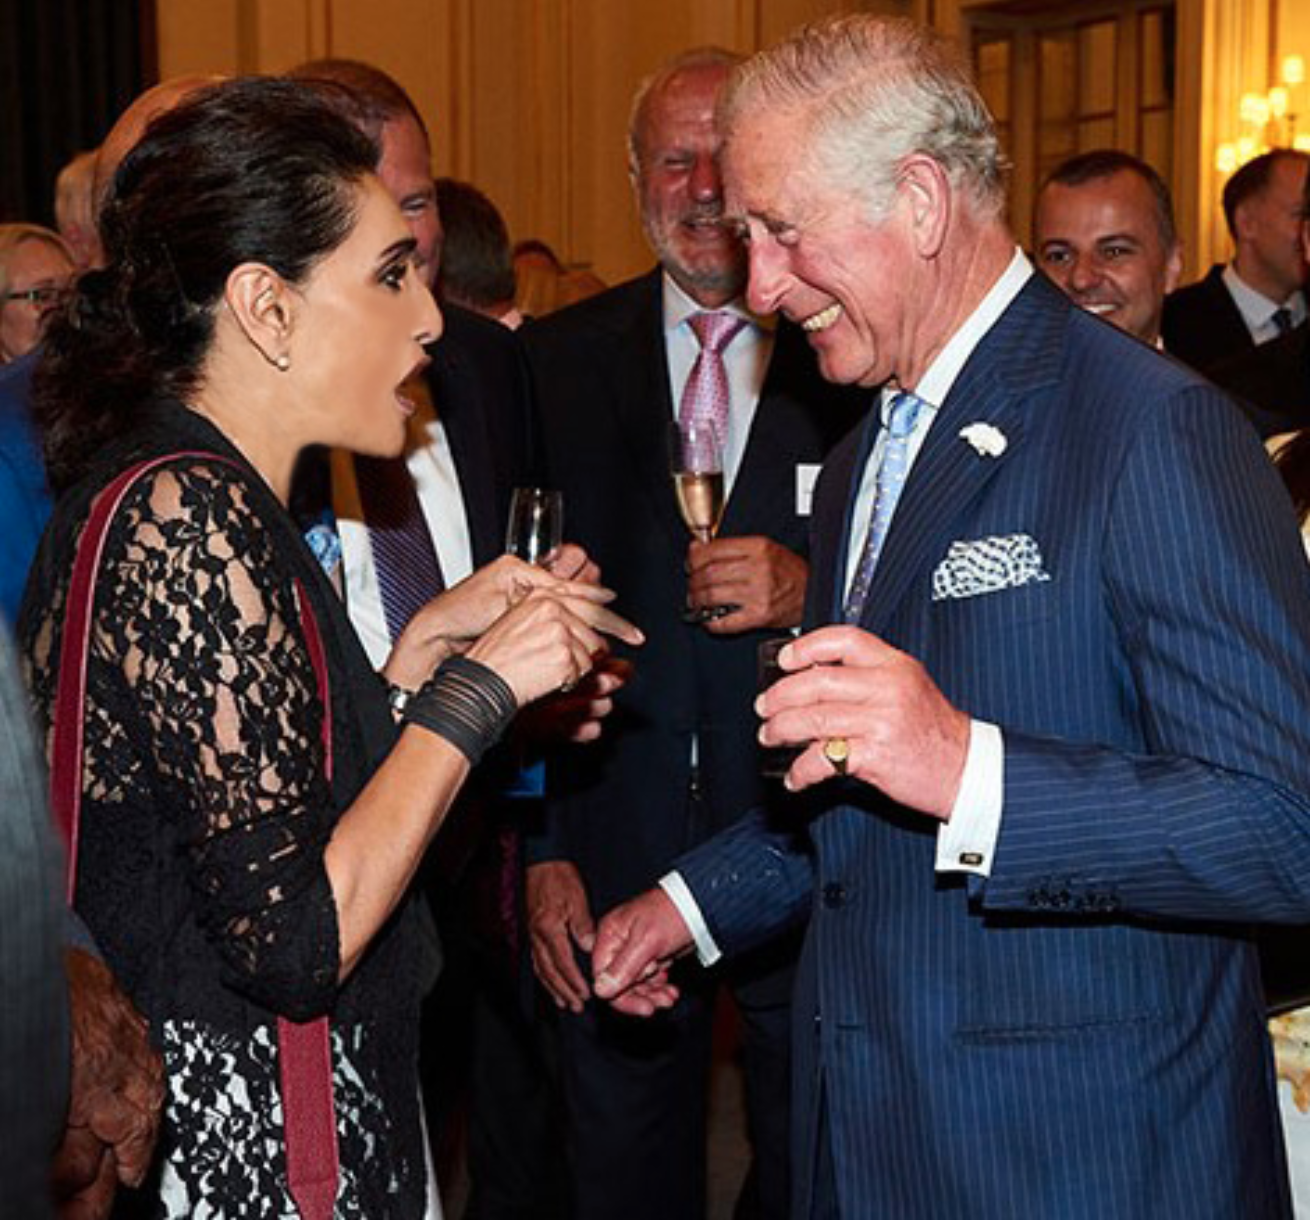 Above: Meera Santoro with Prince Charles when she went to Buckingham Palace to receive the company's first Queen's Award in 2018.